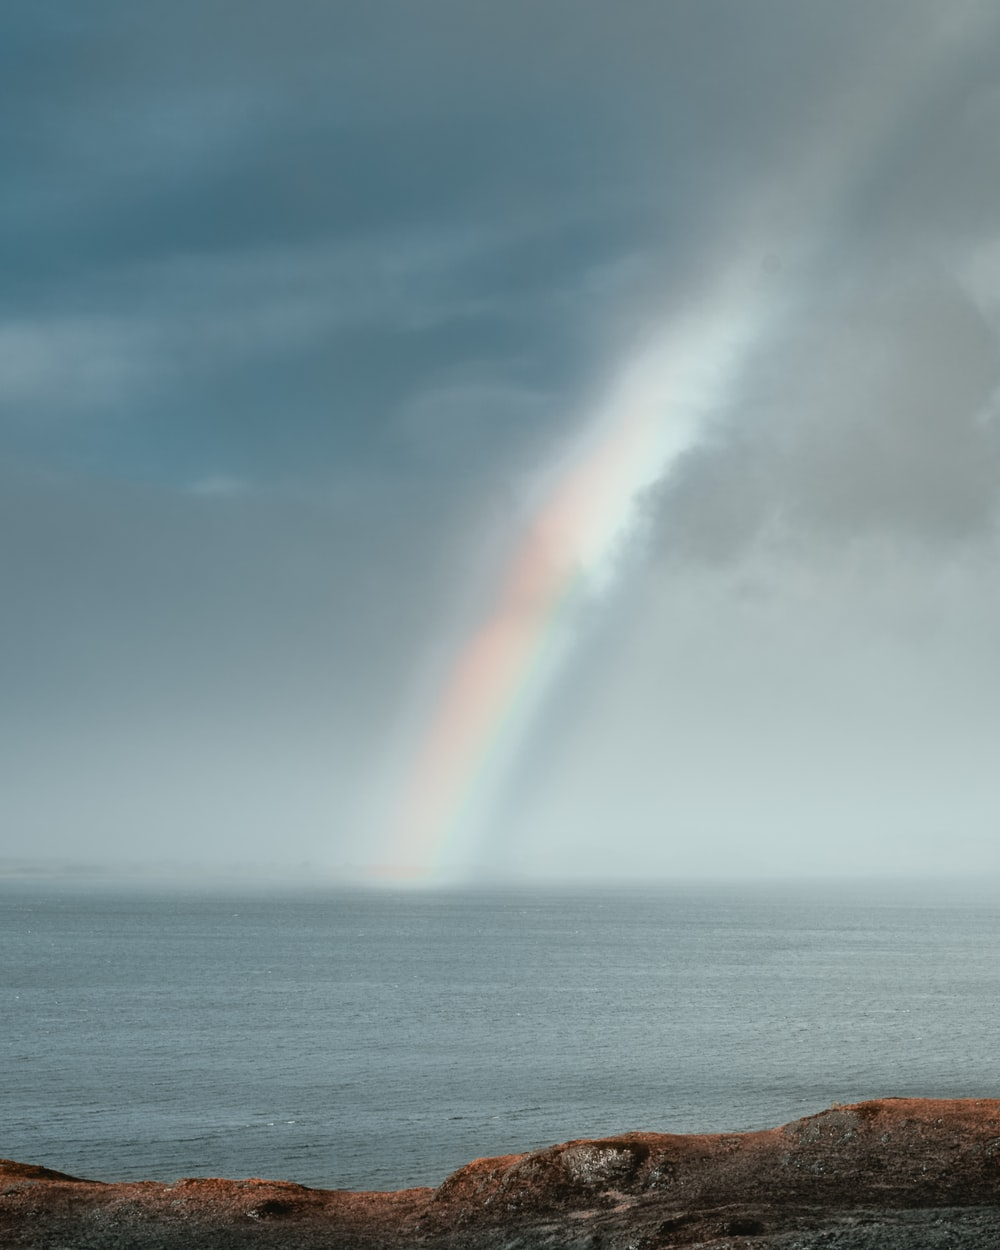 rainbow over the sea during daytime